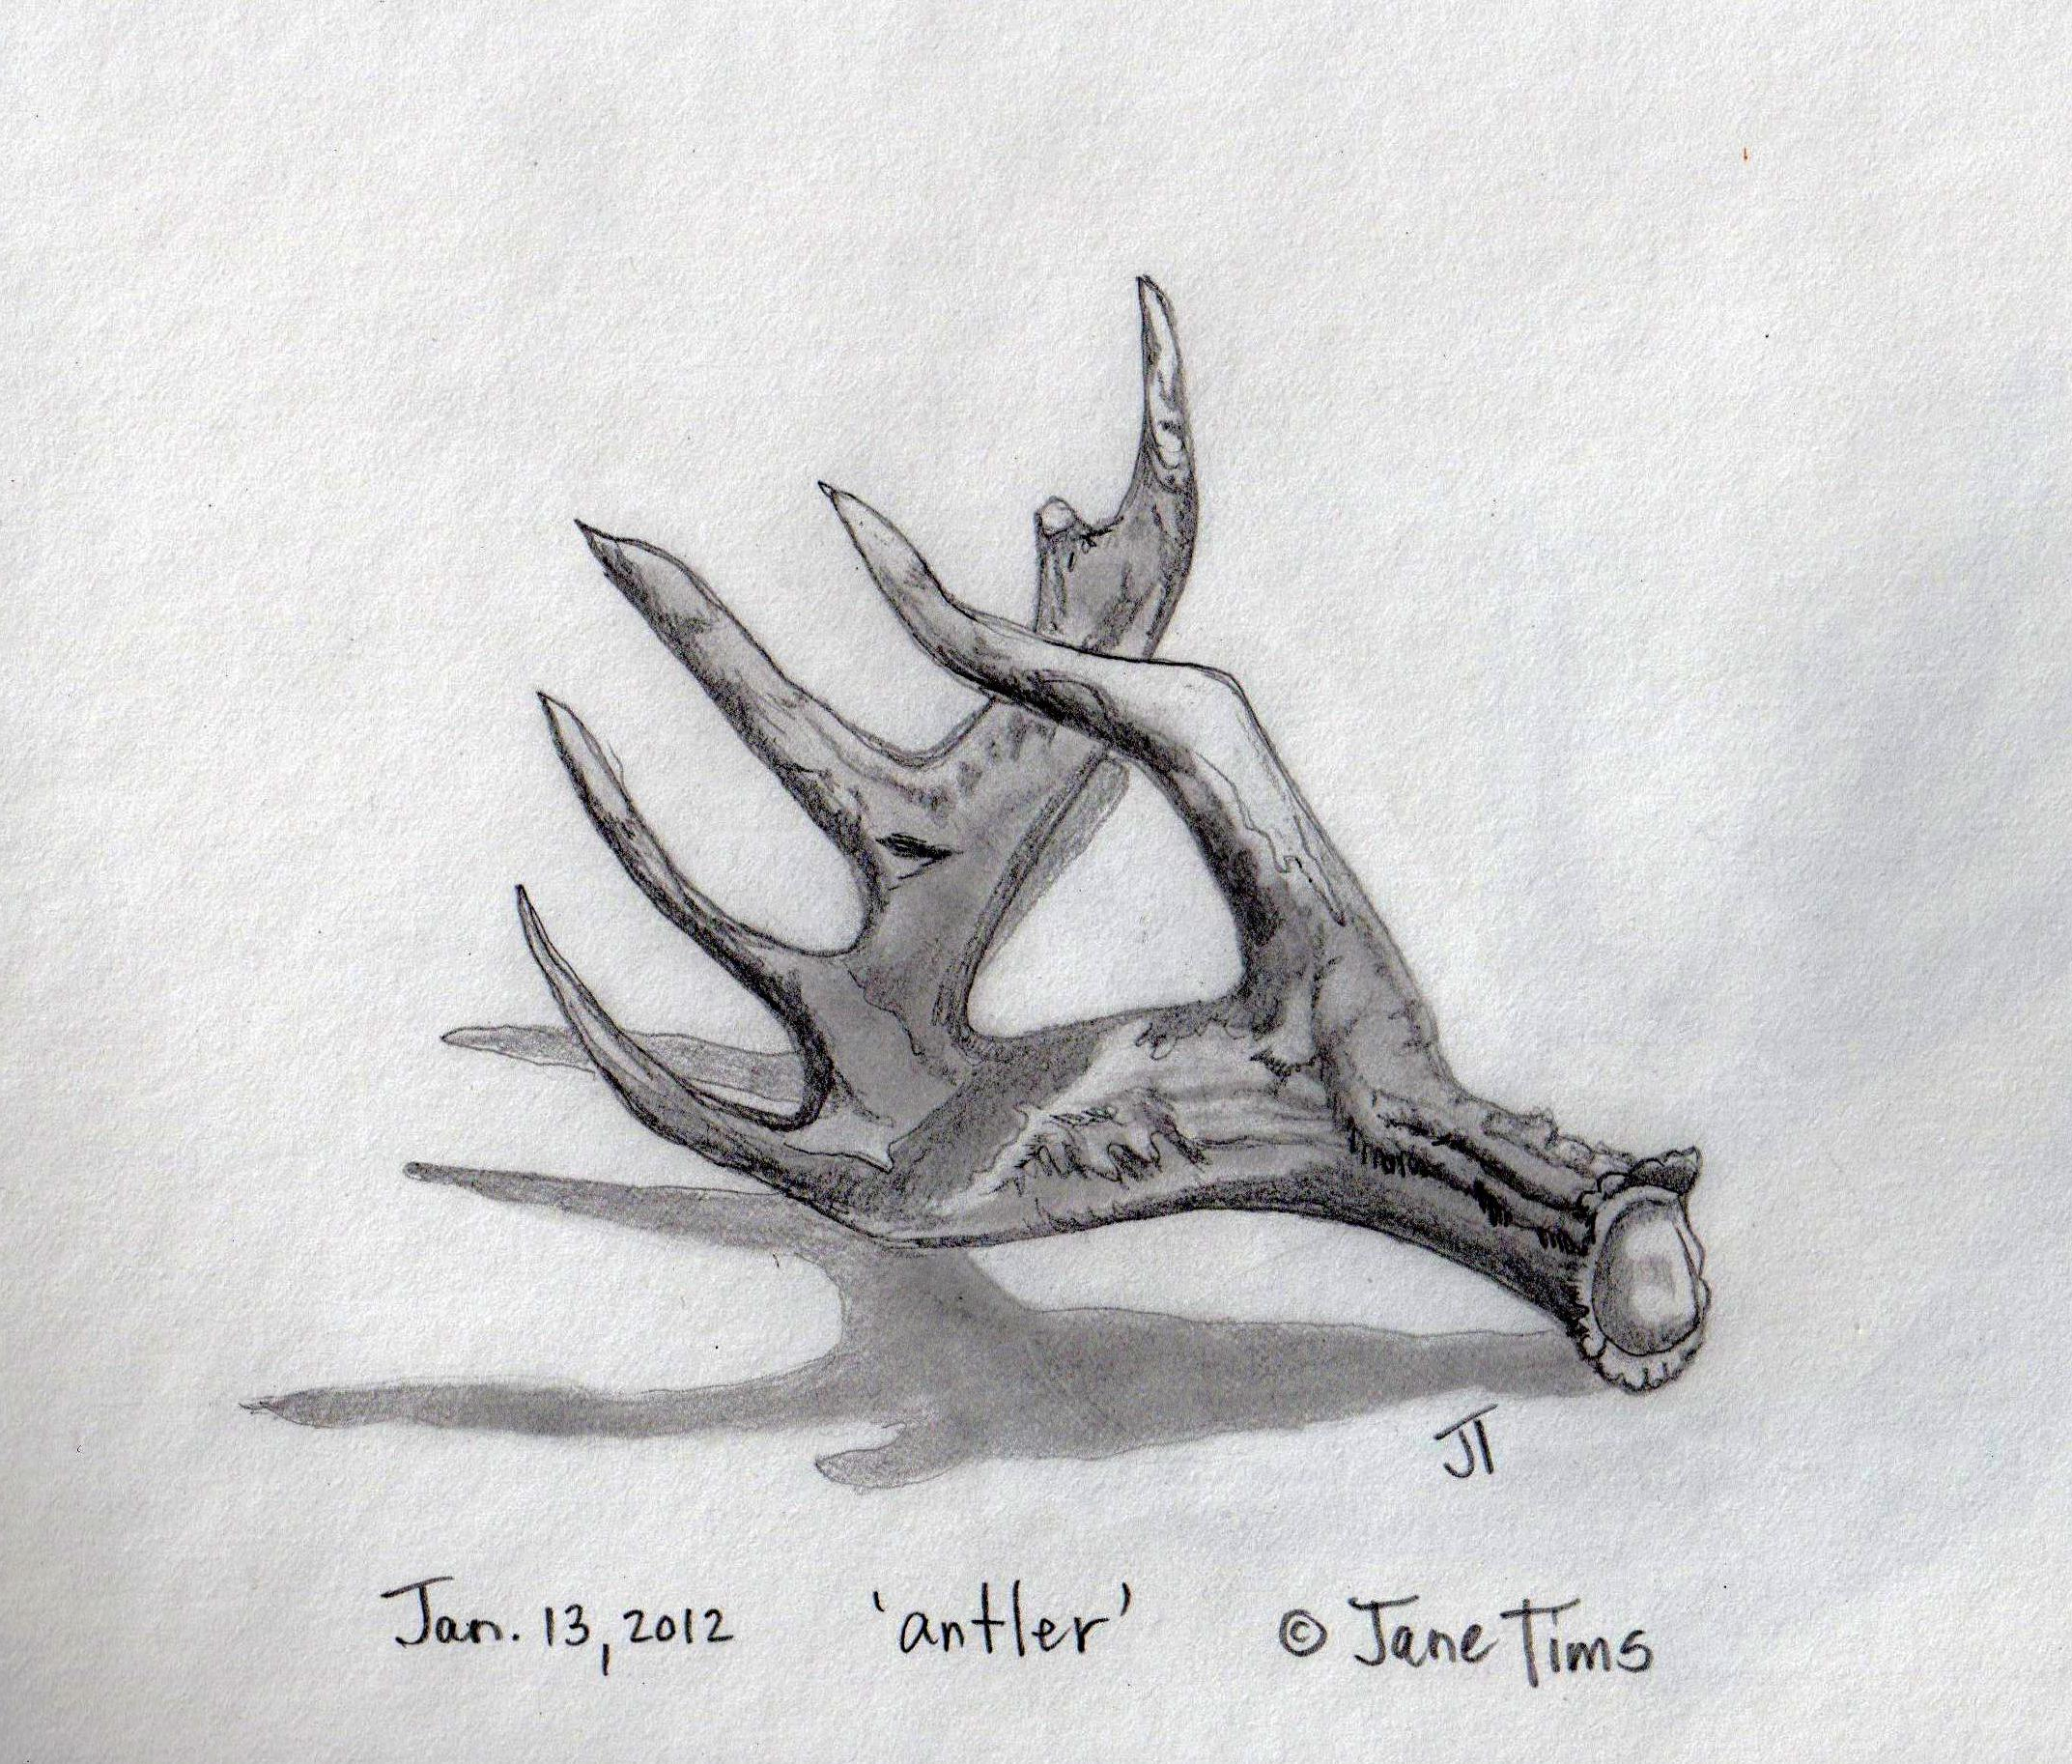 Drawn antler Antler to of bony to